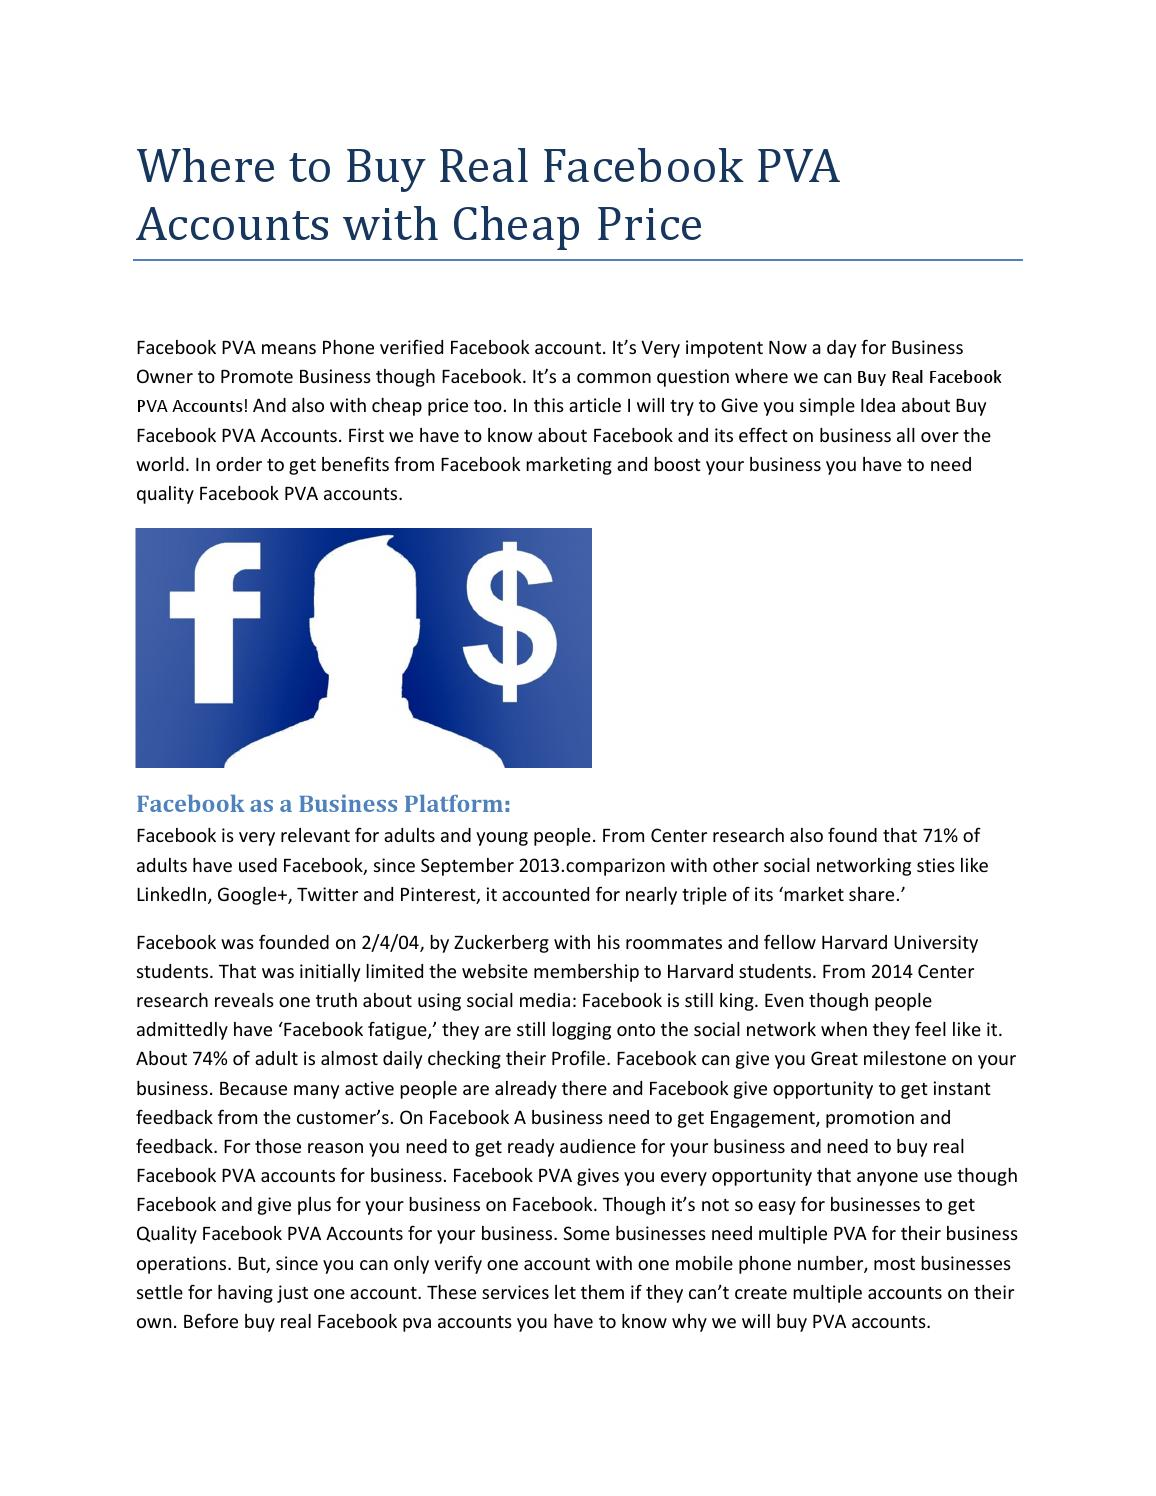 Where to buy real facebook pva accounts with cheap price by